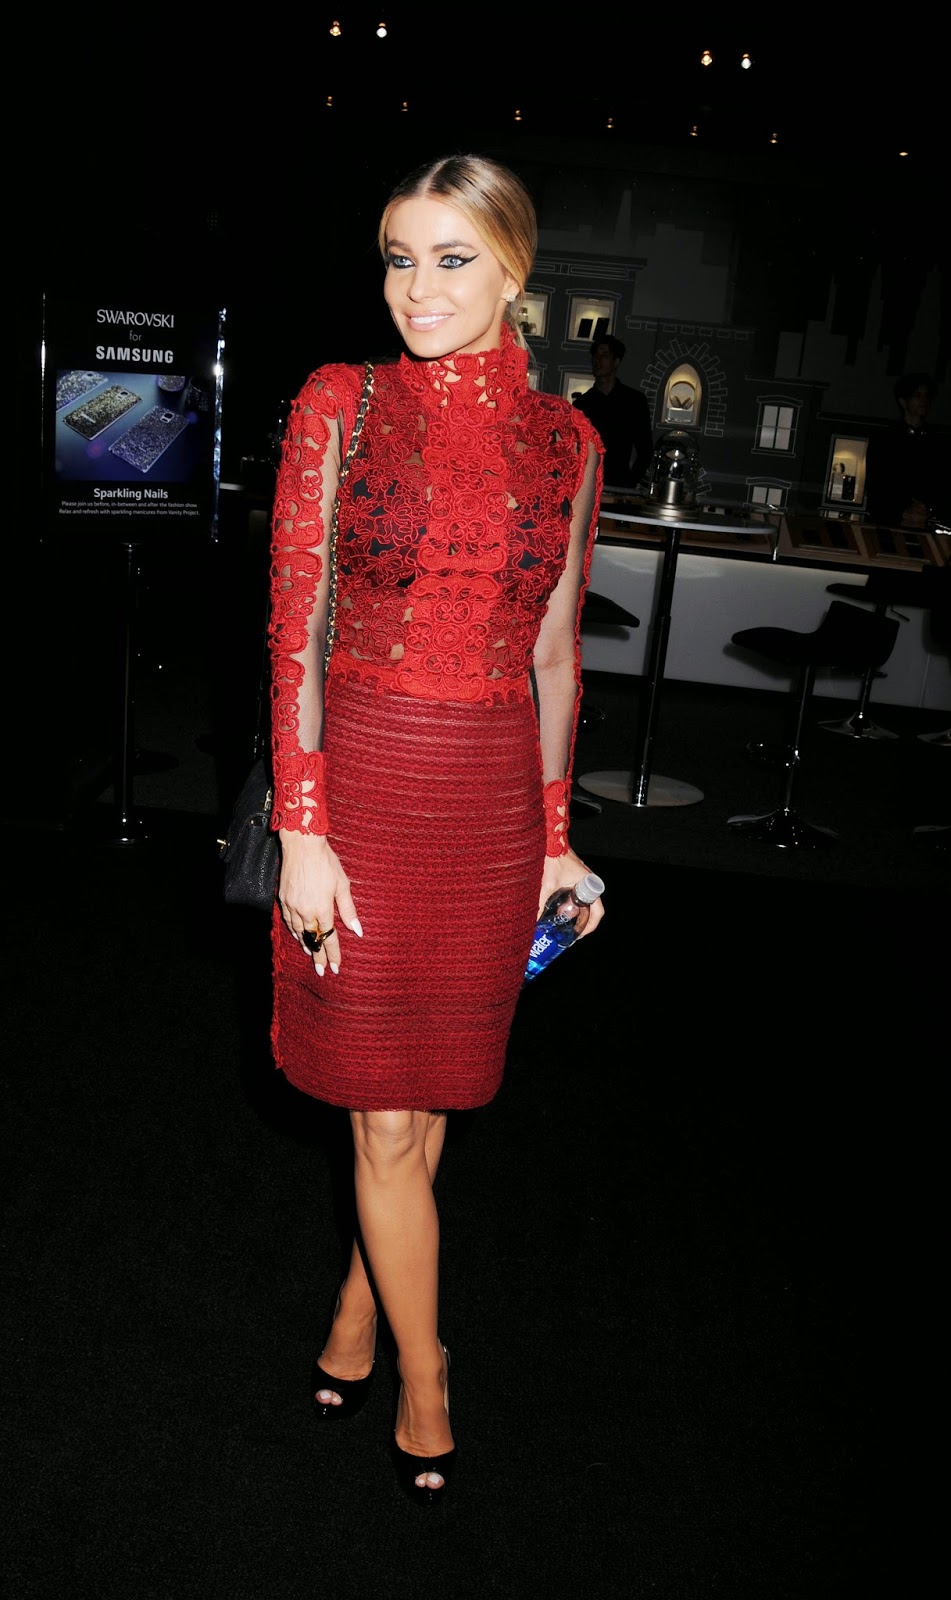 Carmen Electra red dress at Vivienne Tam Fashion Show  pic 1